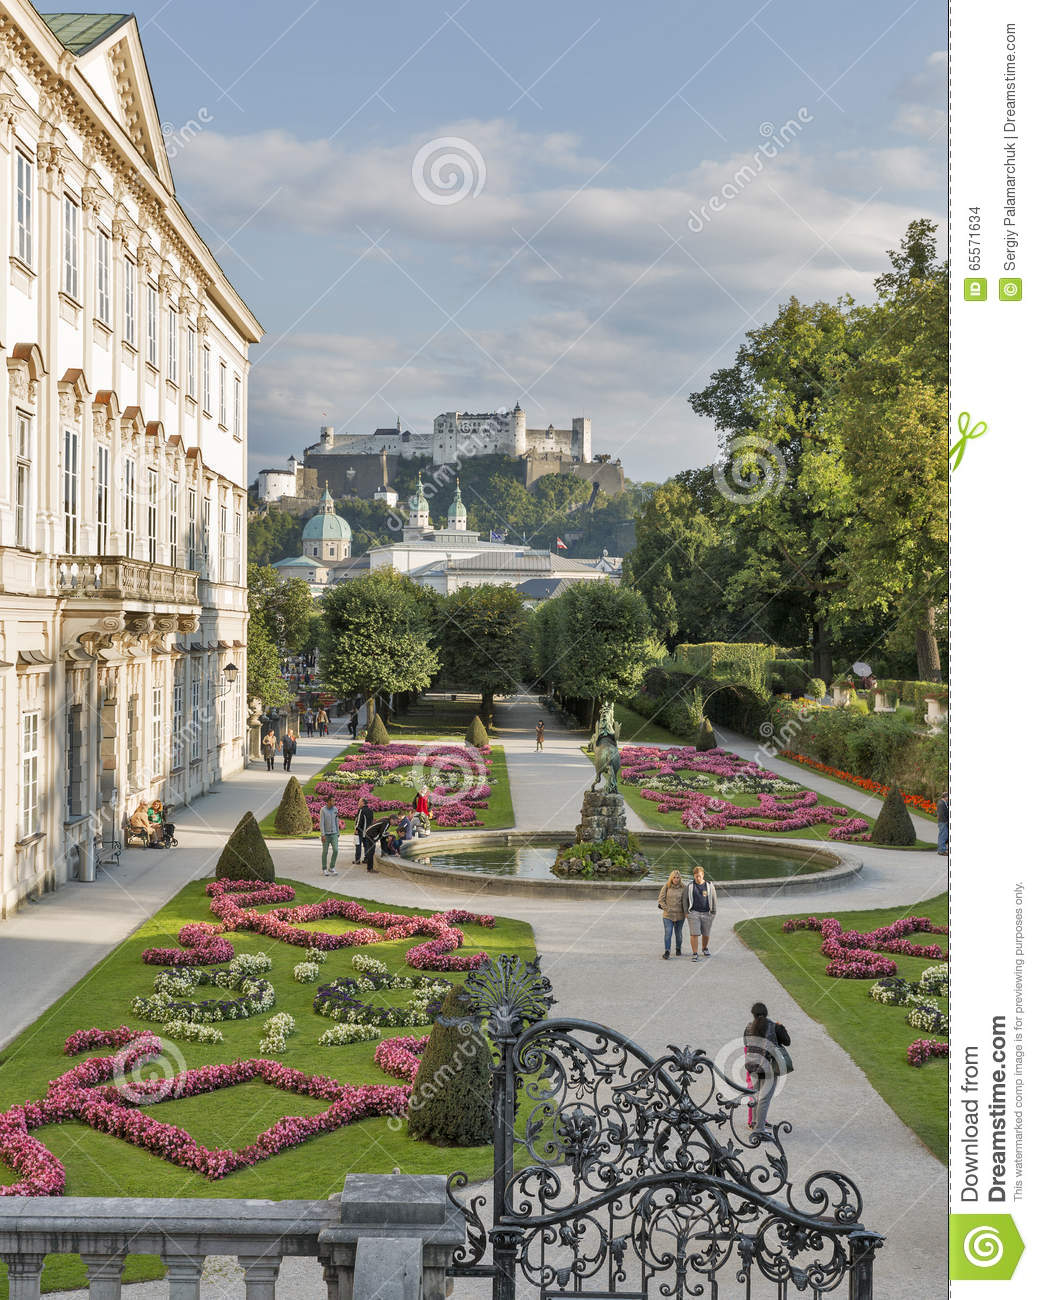 Gardens Of Mirabell In Salzburg Old Town, Austria Editorial Stock.